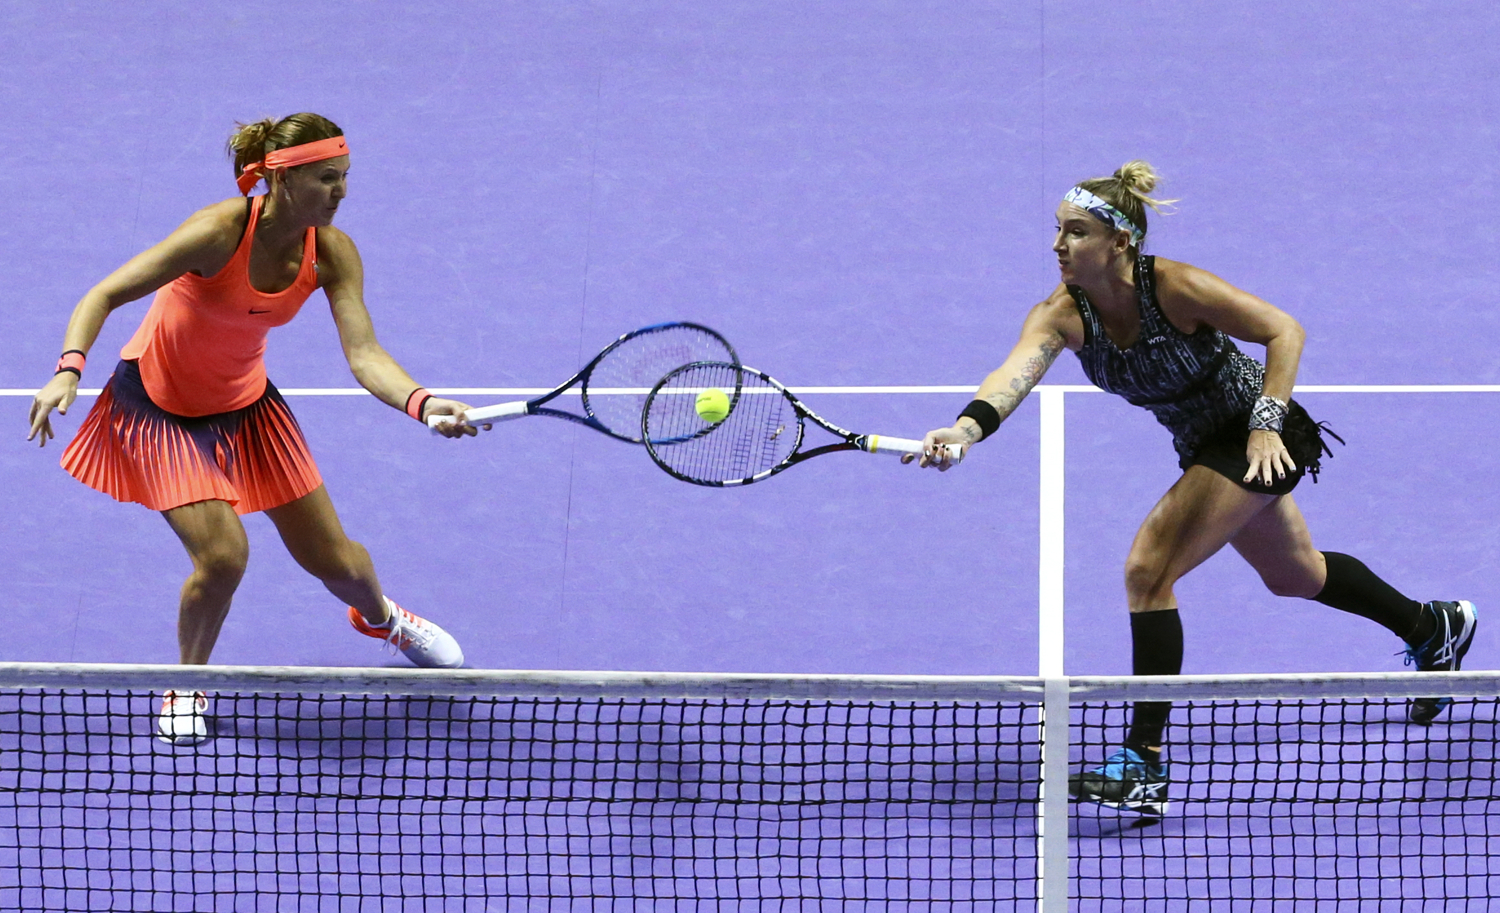 Tennis - BNP Paribas WTA Finals - Singapore Indoor Stadium - 30/10/16 USA's Bethanie Mattek-Sands and Czech Republic's Lucie Safarova in action during their final match Mandatory Credit: Action Images / Yong Teck Lim Livepic EDITORIAL USE ONLY.